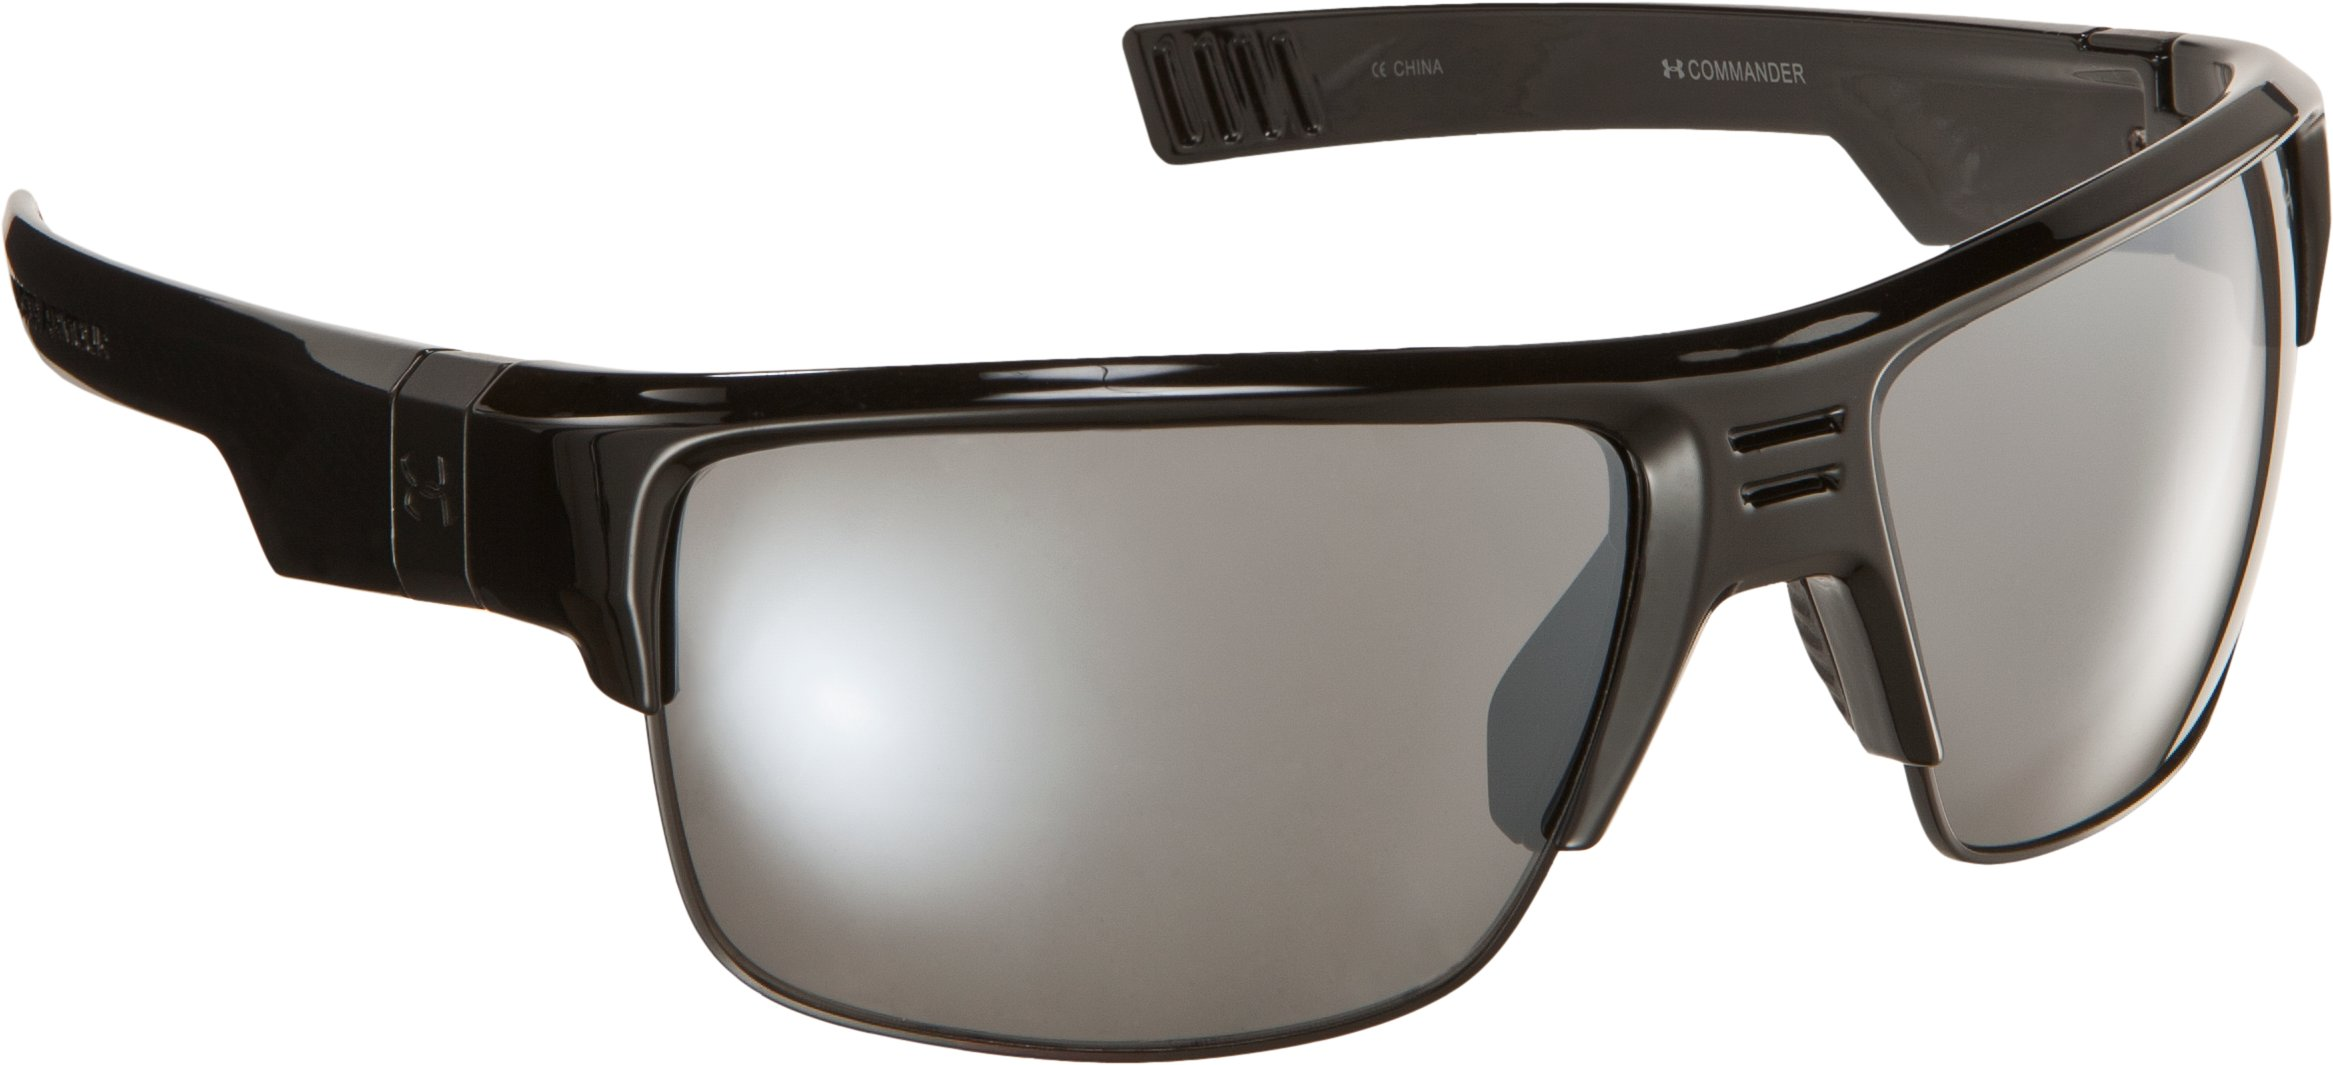 UA Commander Sunglasses, Shiny Black